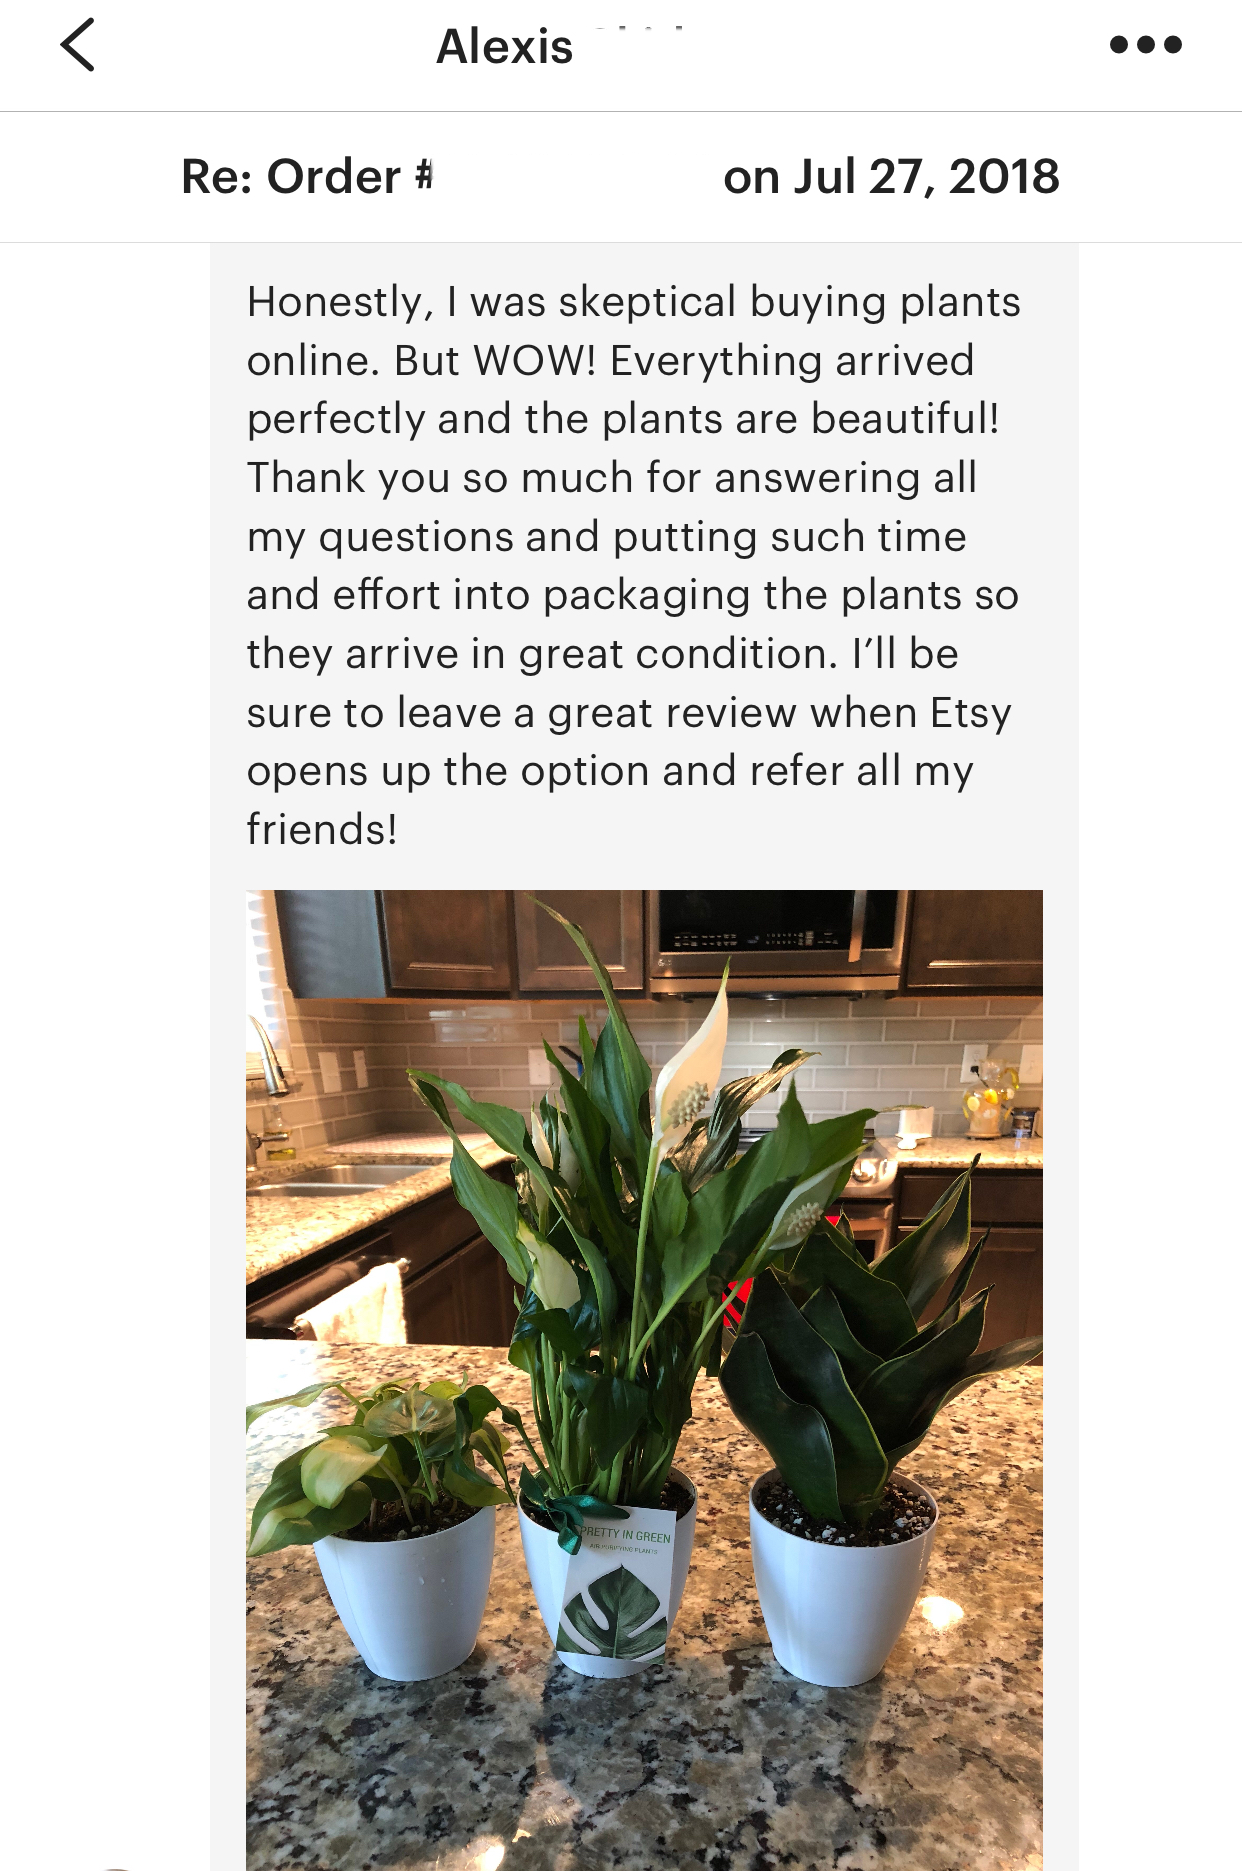 Text message review from Etsy prettyingreenplants